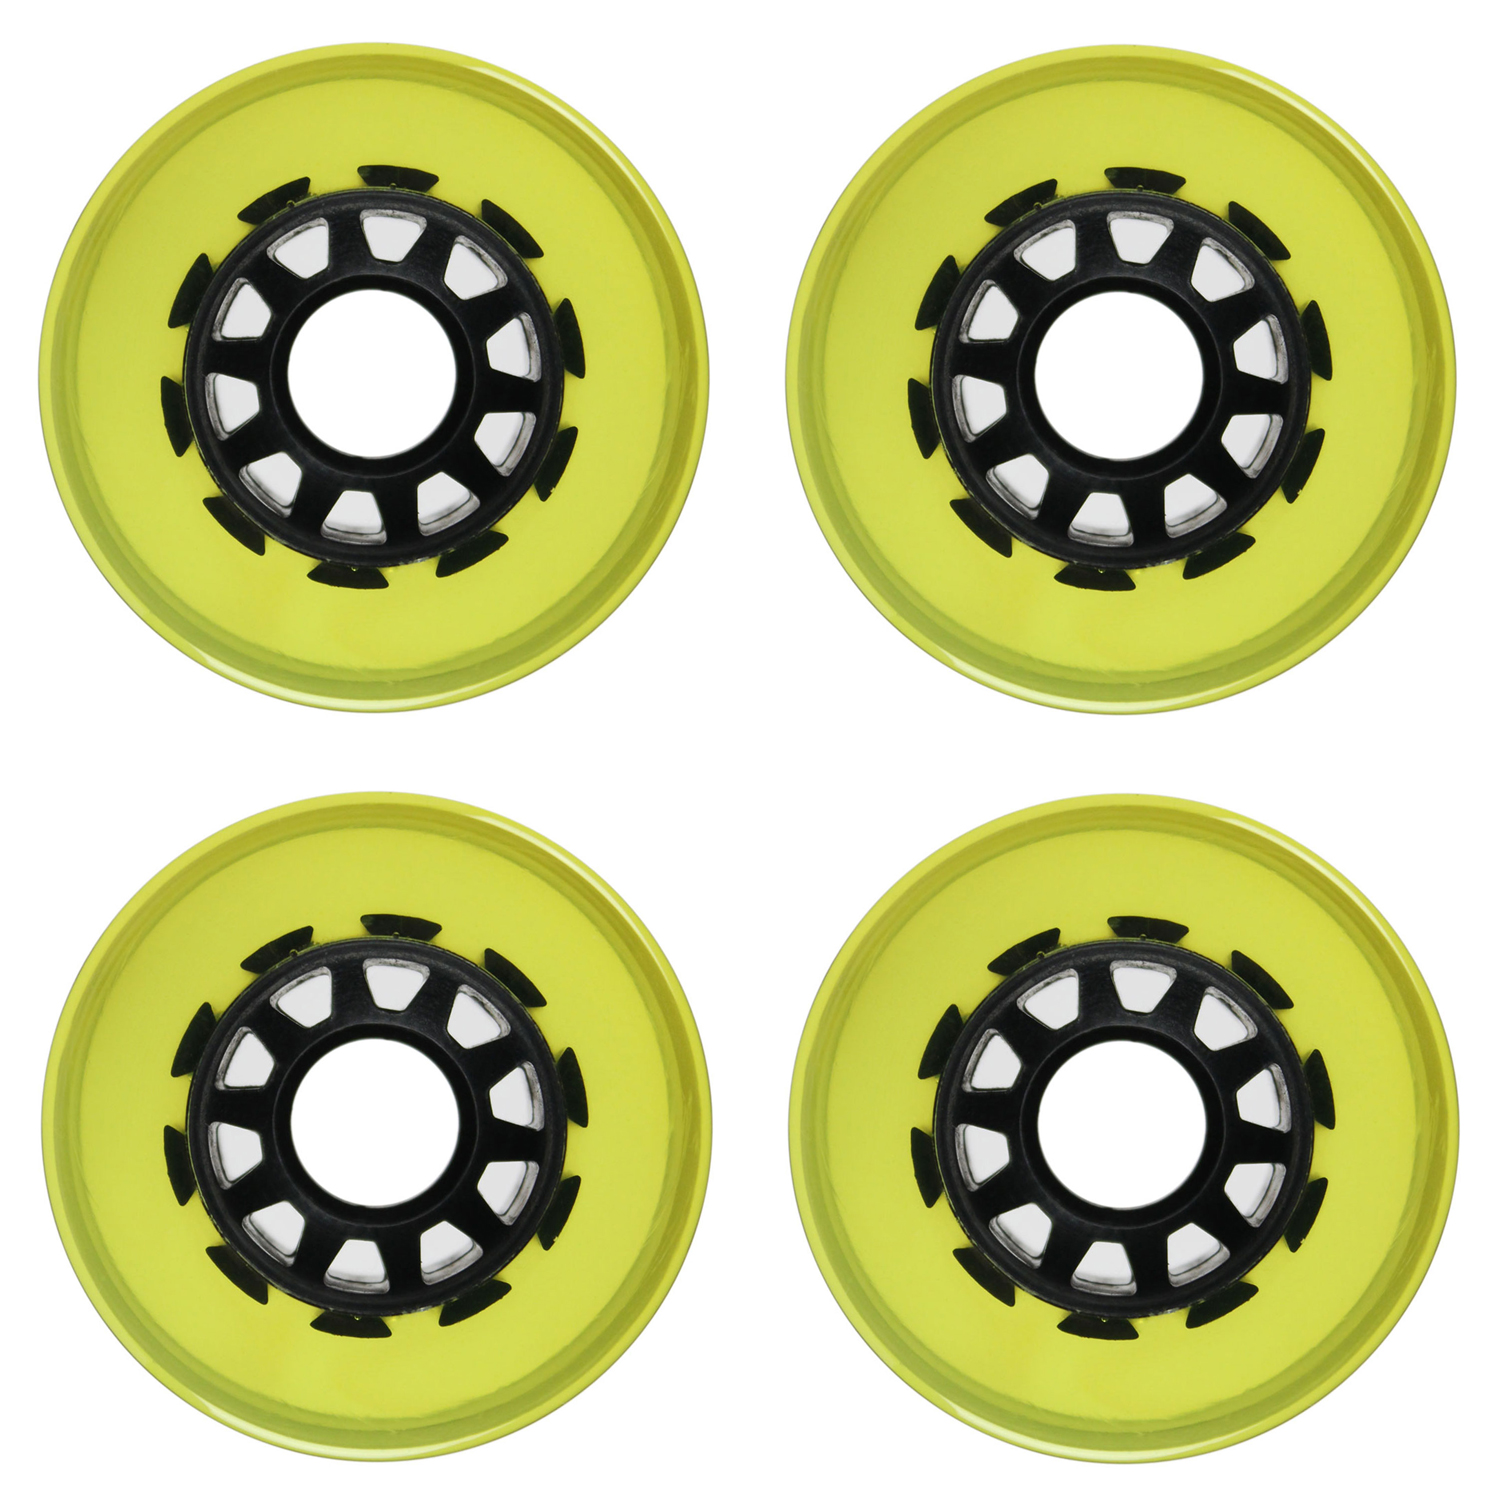 Longboard Wheels 70mm Smooth Transparent Yellow Black Spoke Hub USA Made 78A